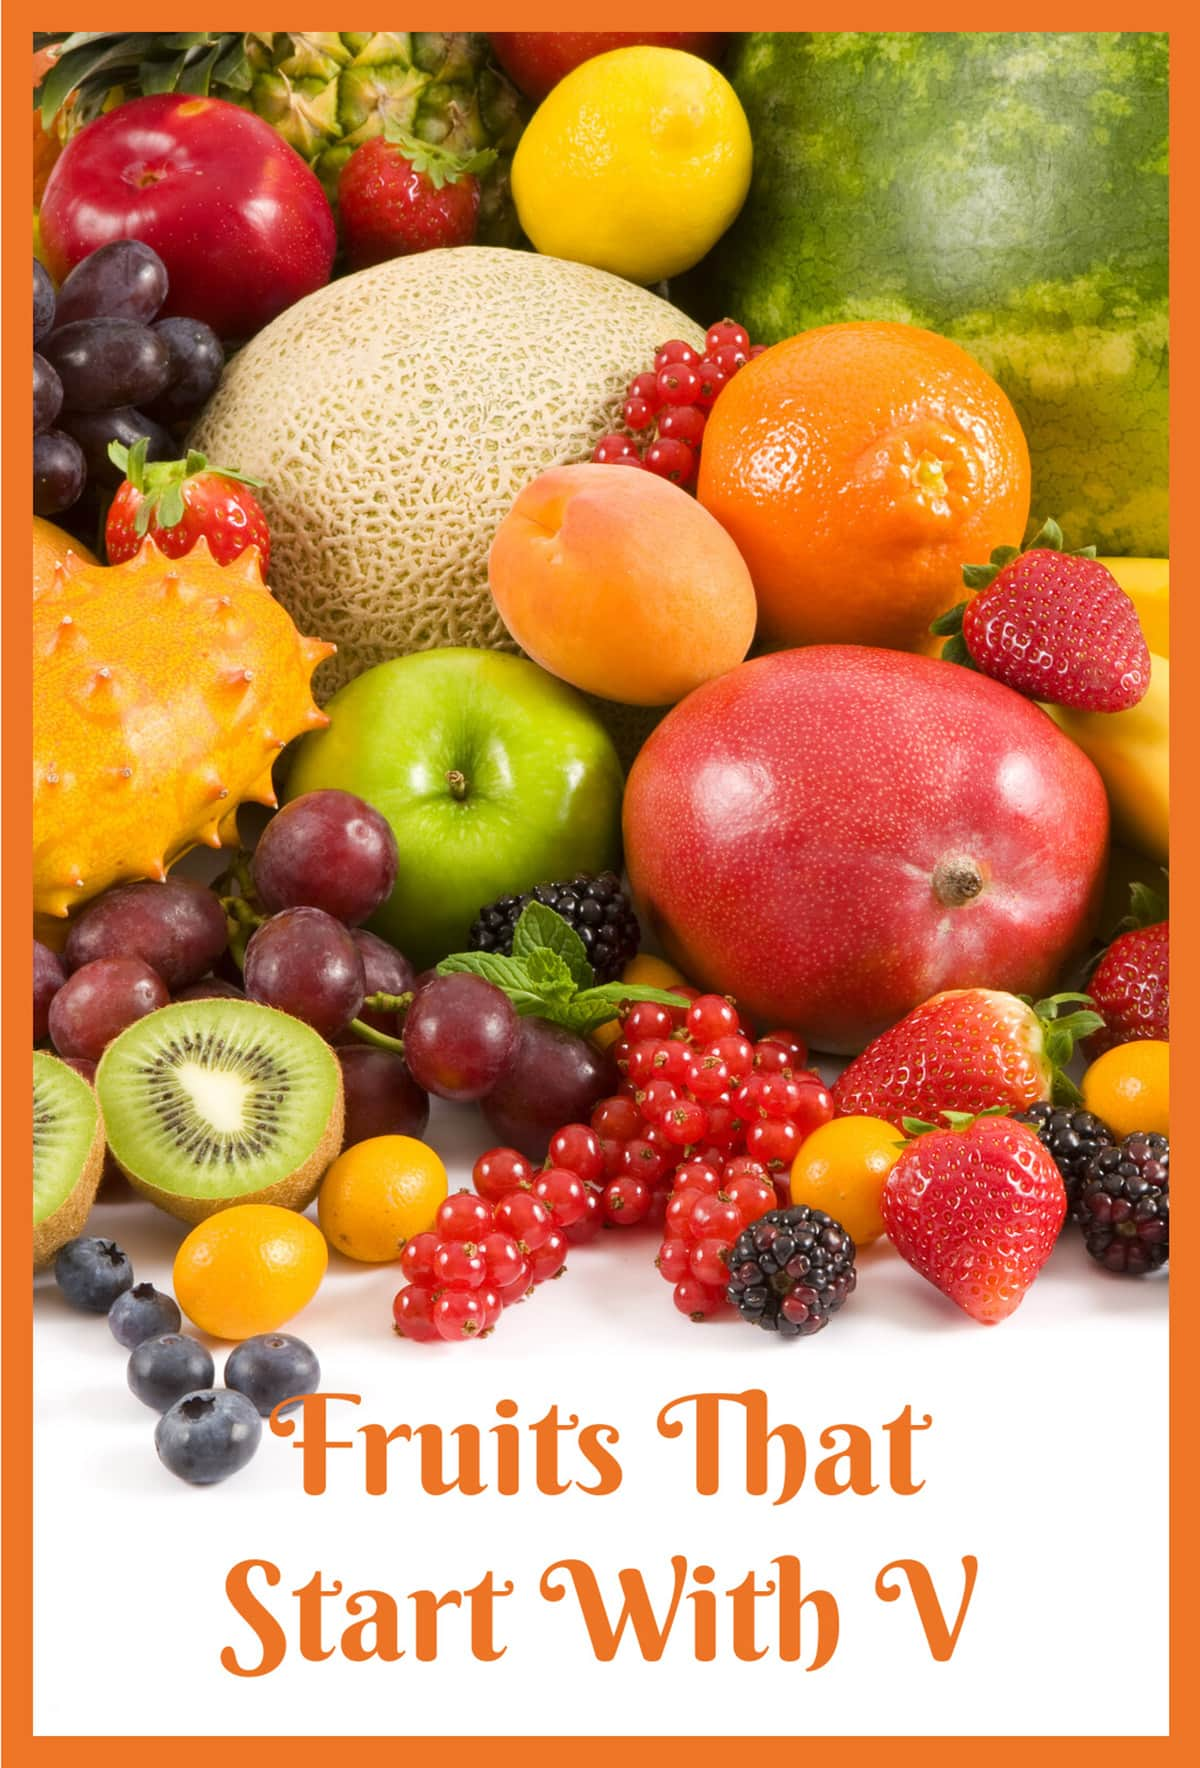 Fruits That Start With V